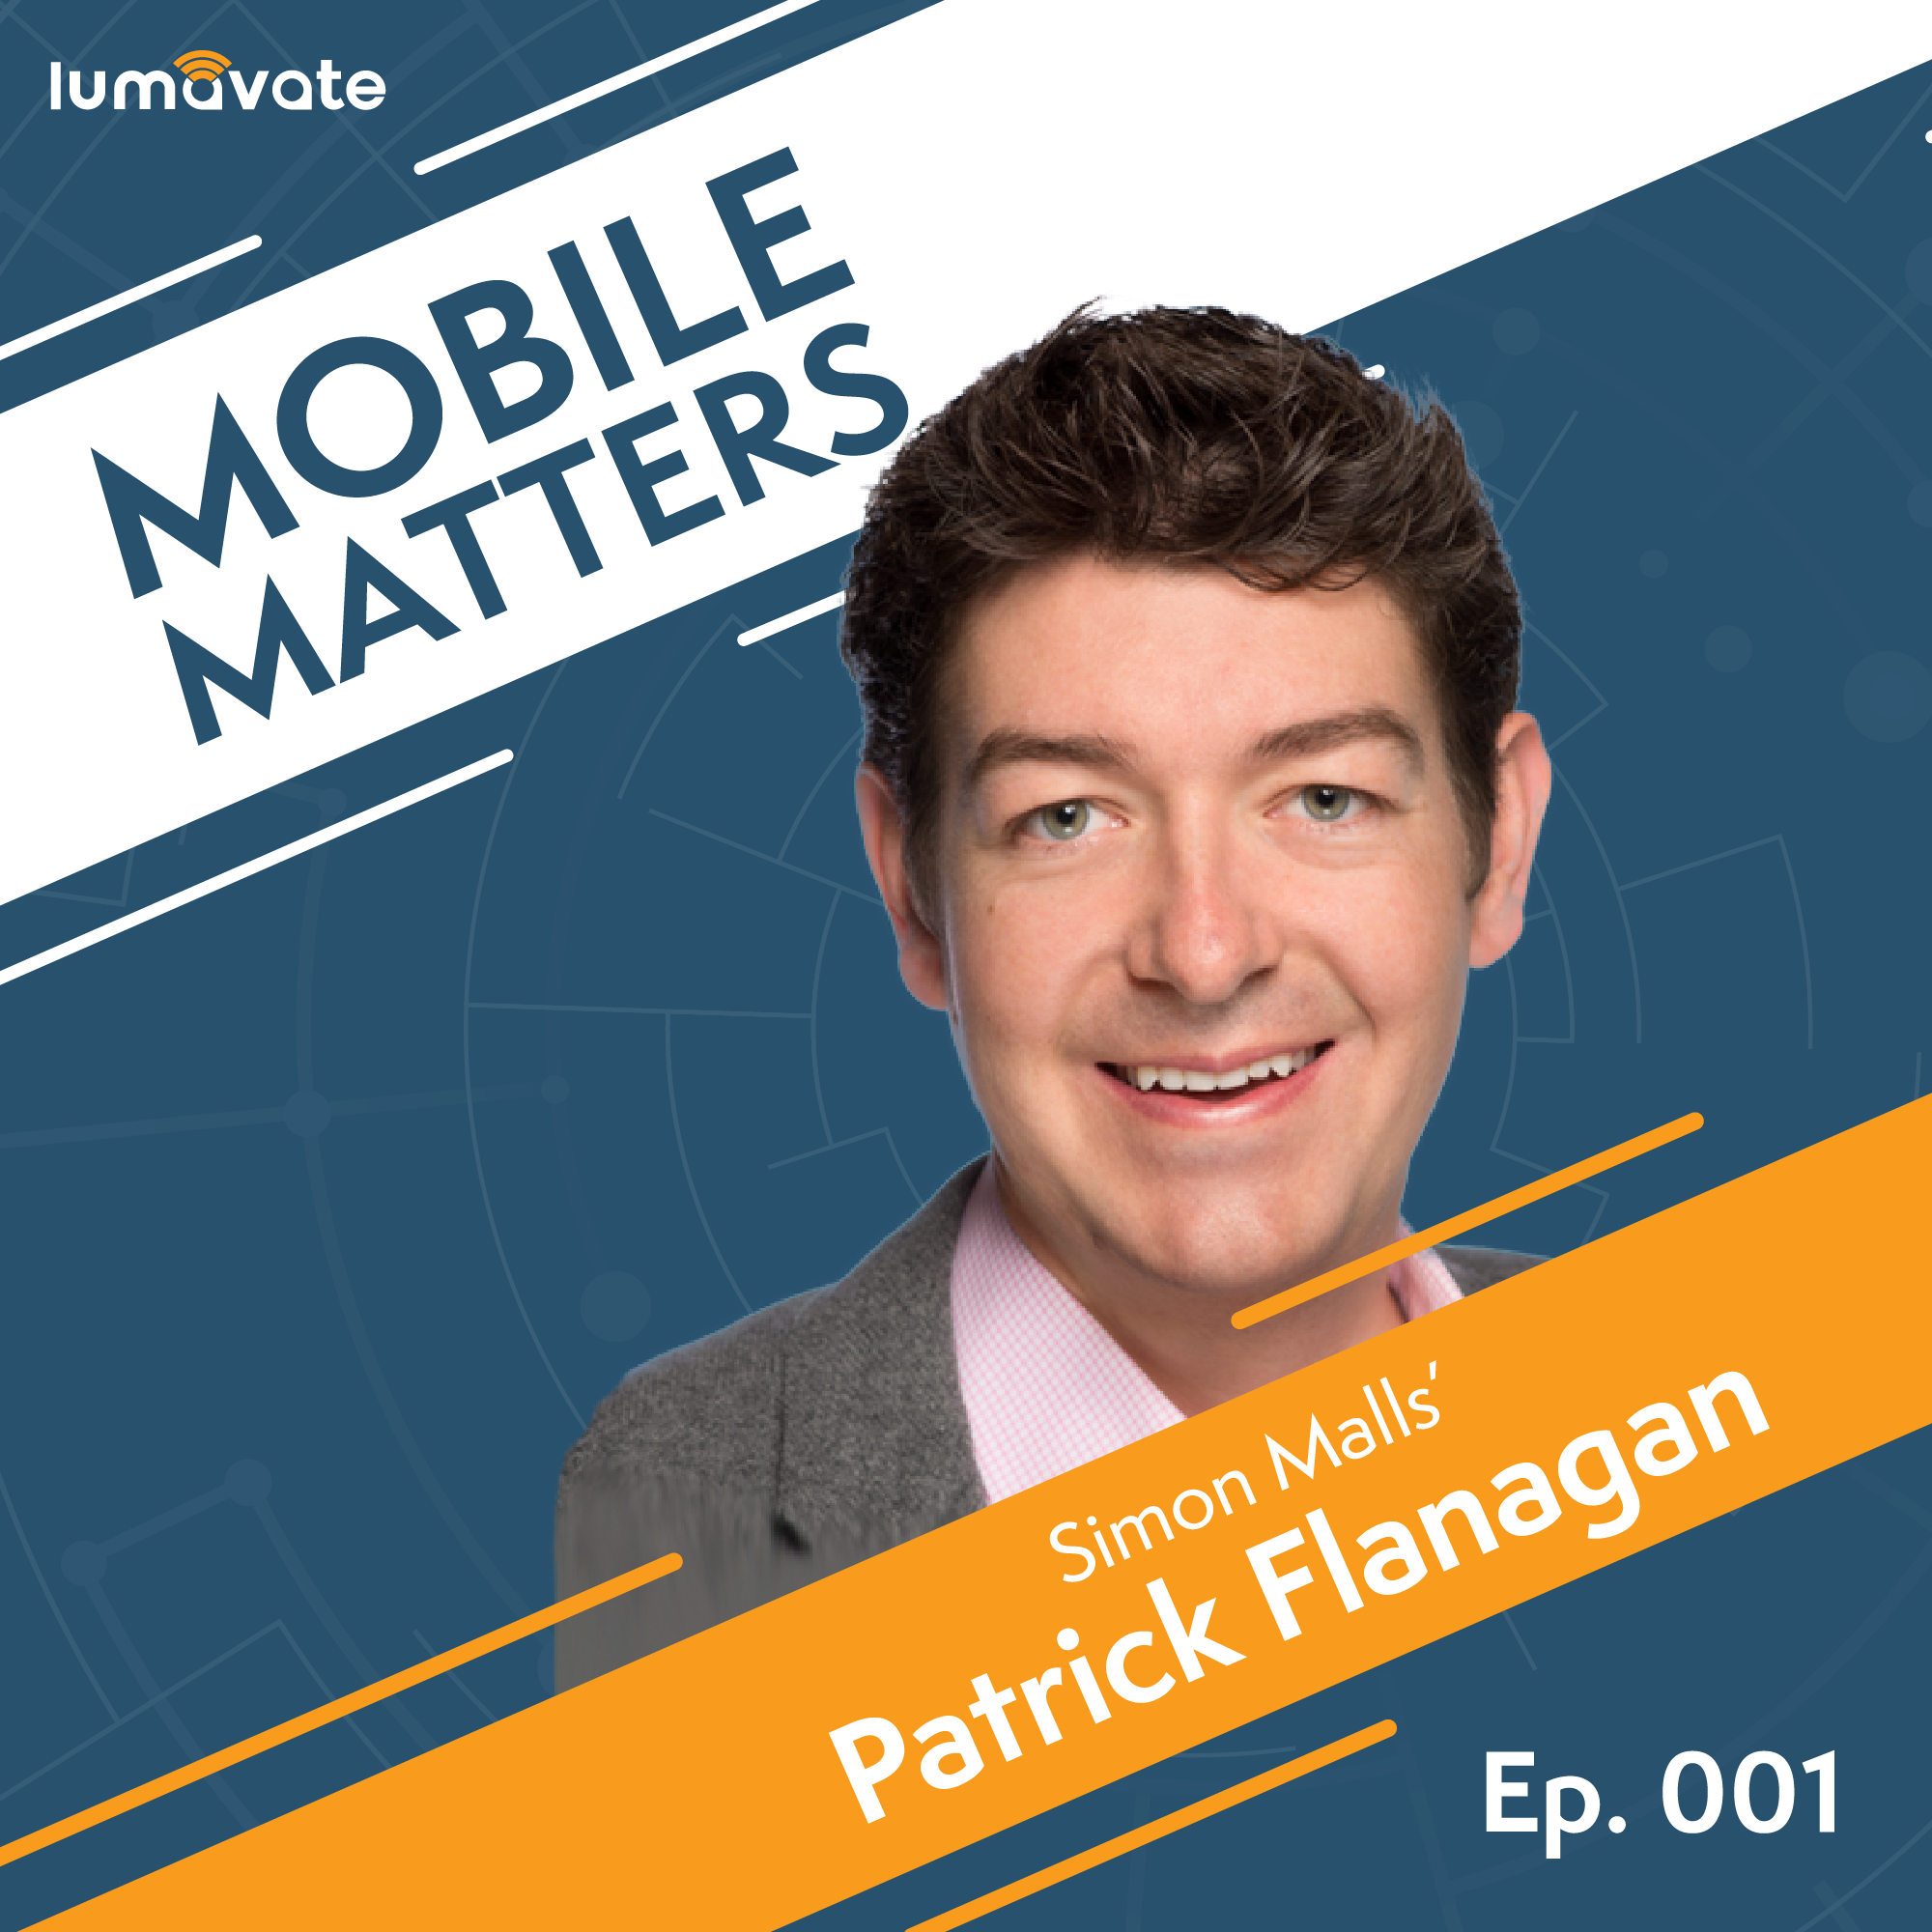 001: Simon Property Group   It's Time for a Mobile-first Mindset